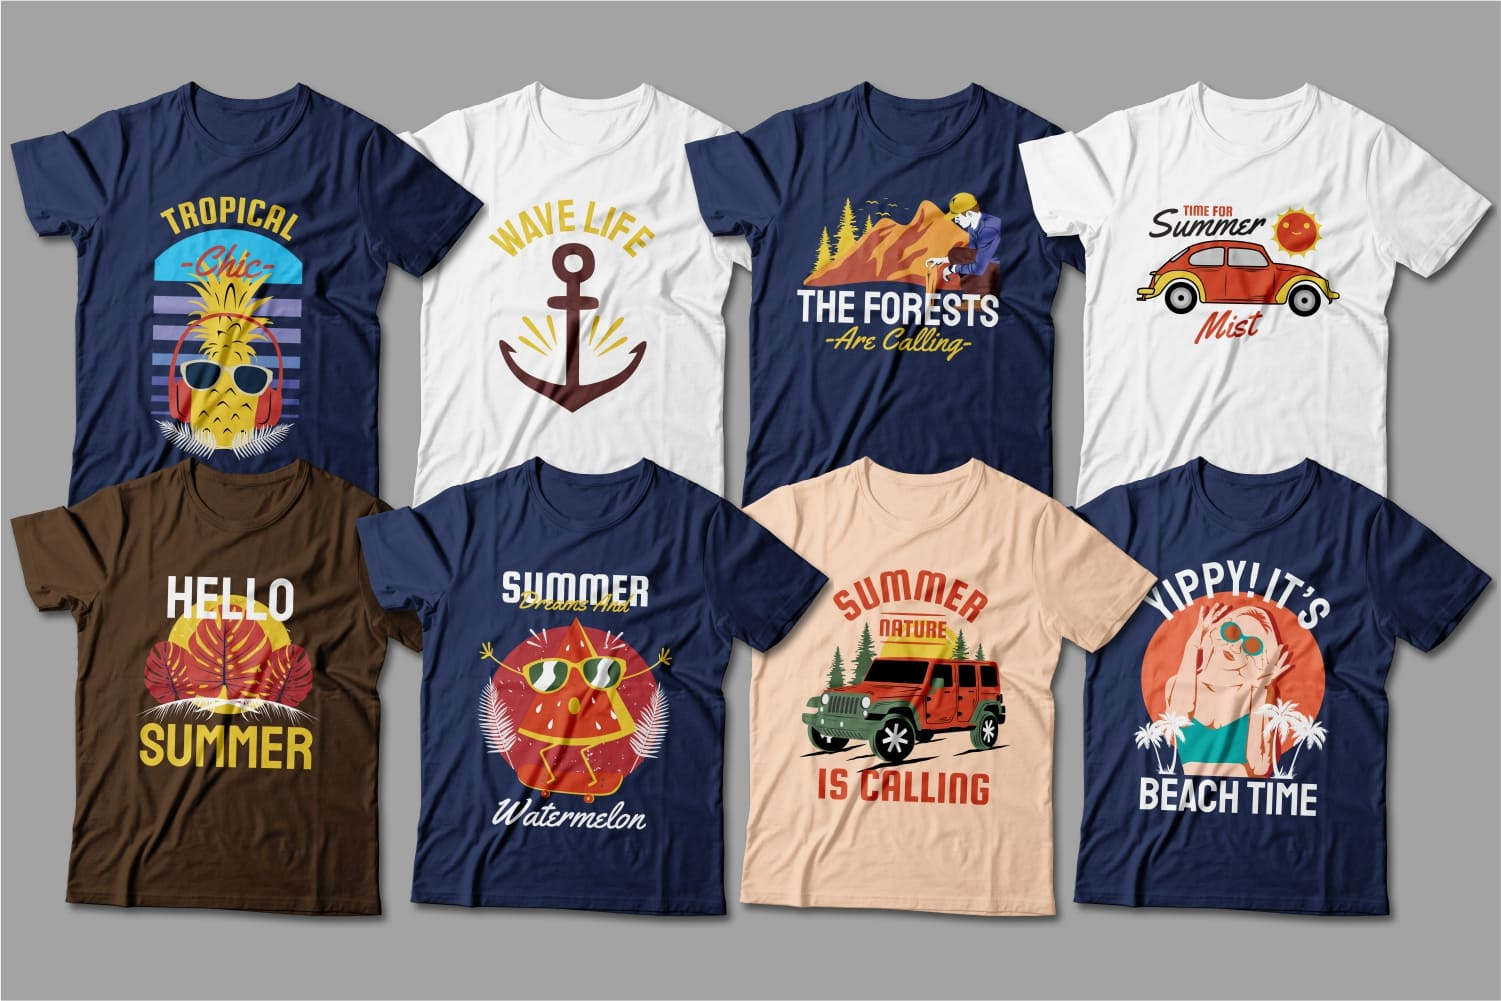 Summer T-shirts featuring relaxation, summer food and cars.